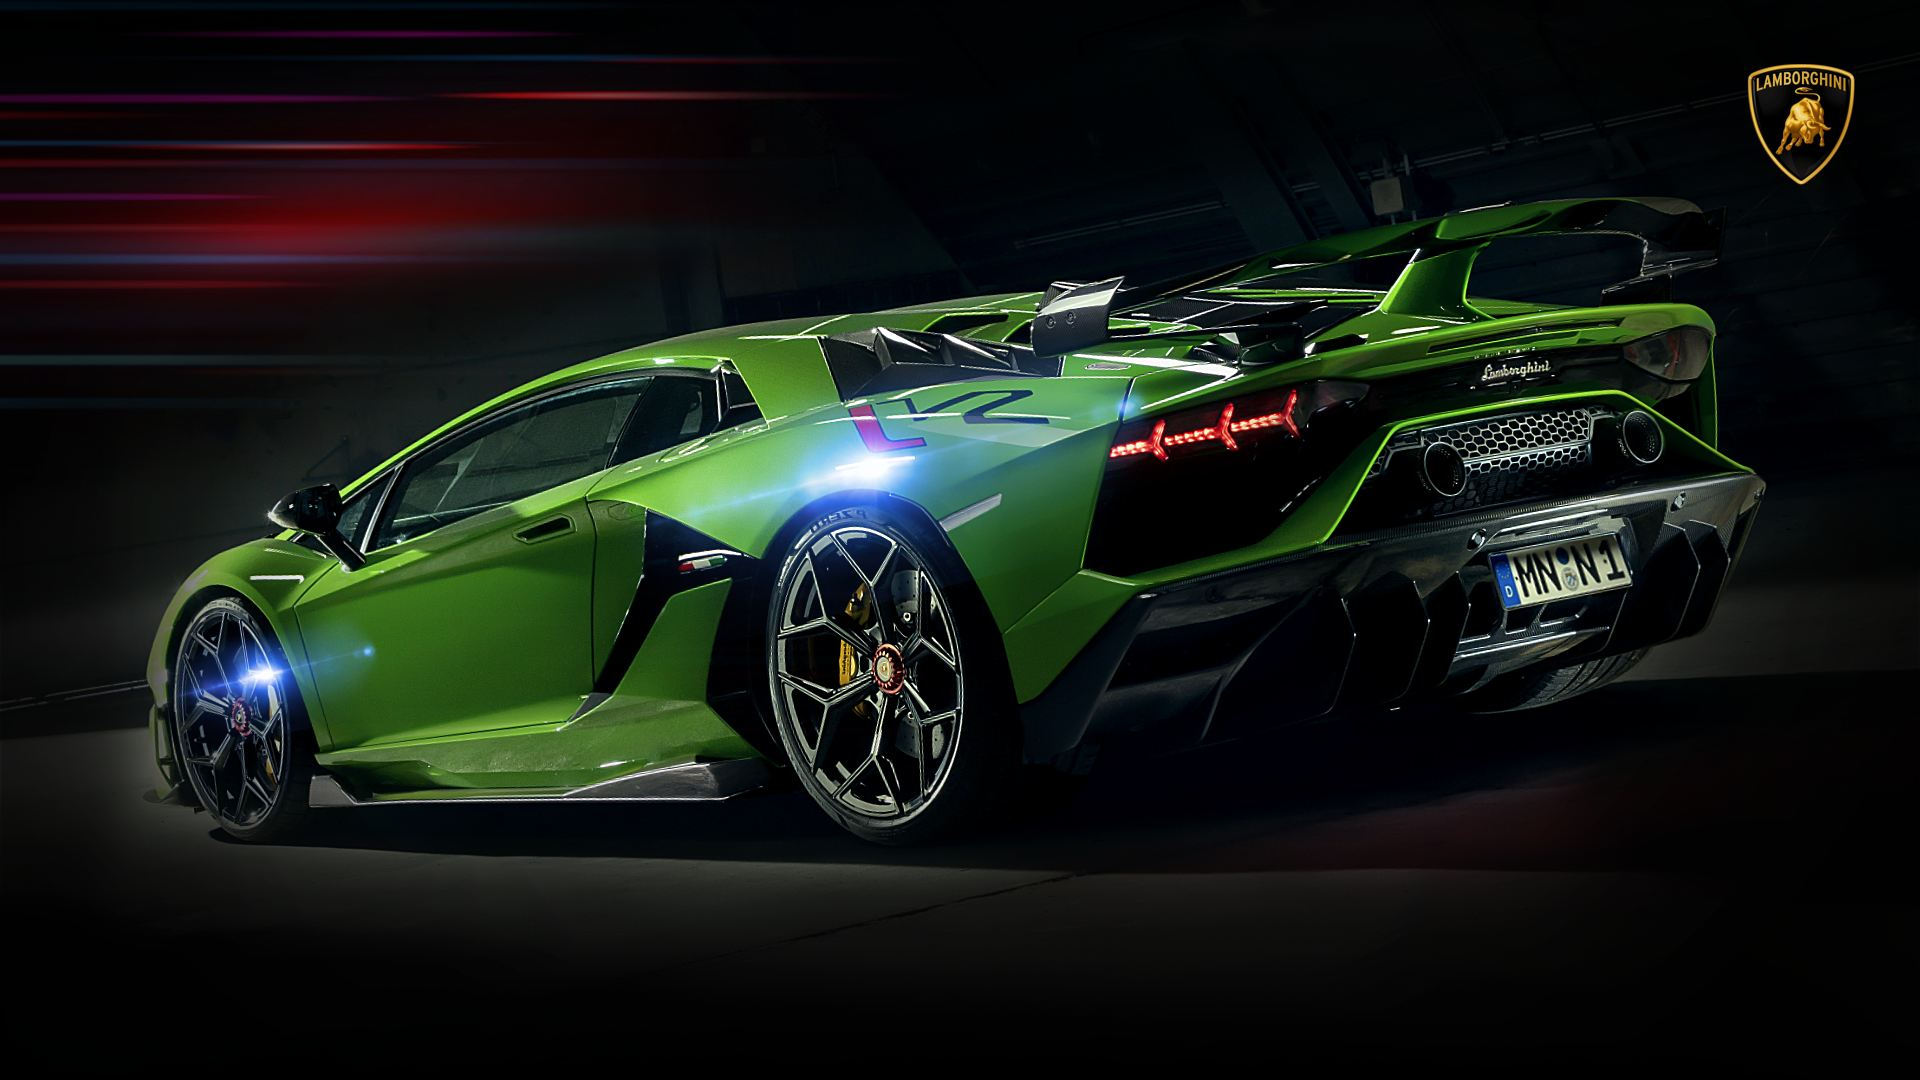 Cool Car Wallpaper Lamborghini